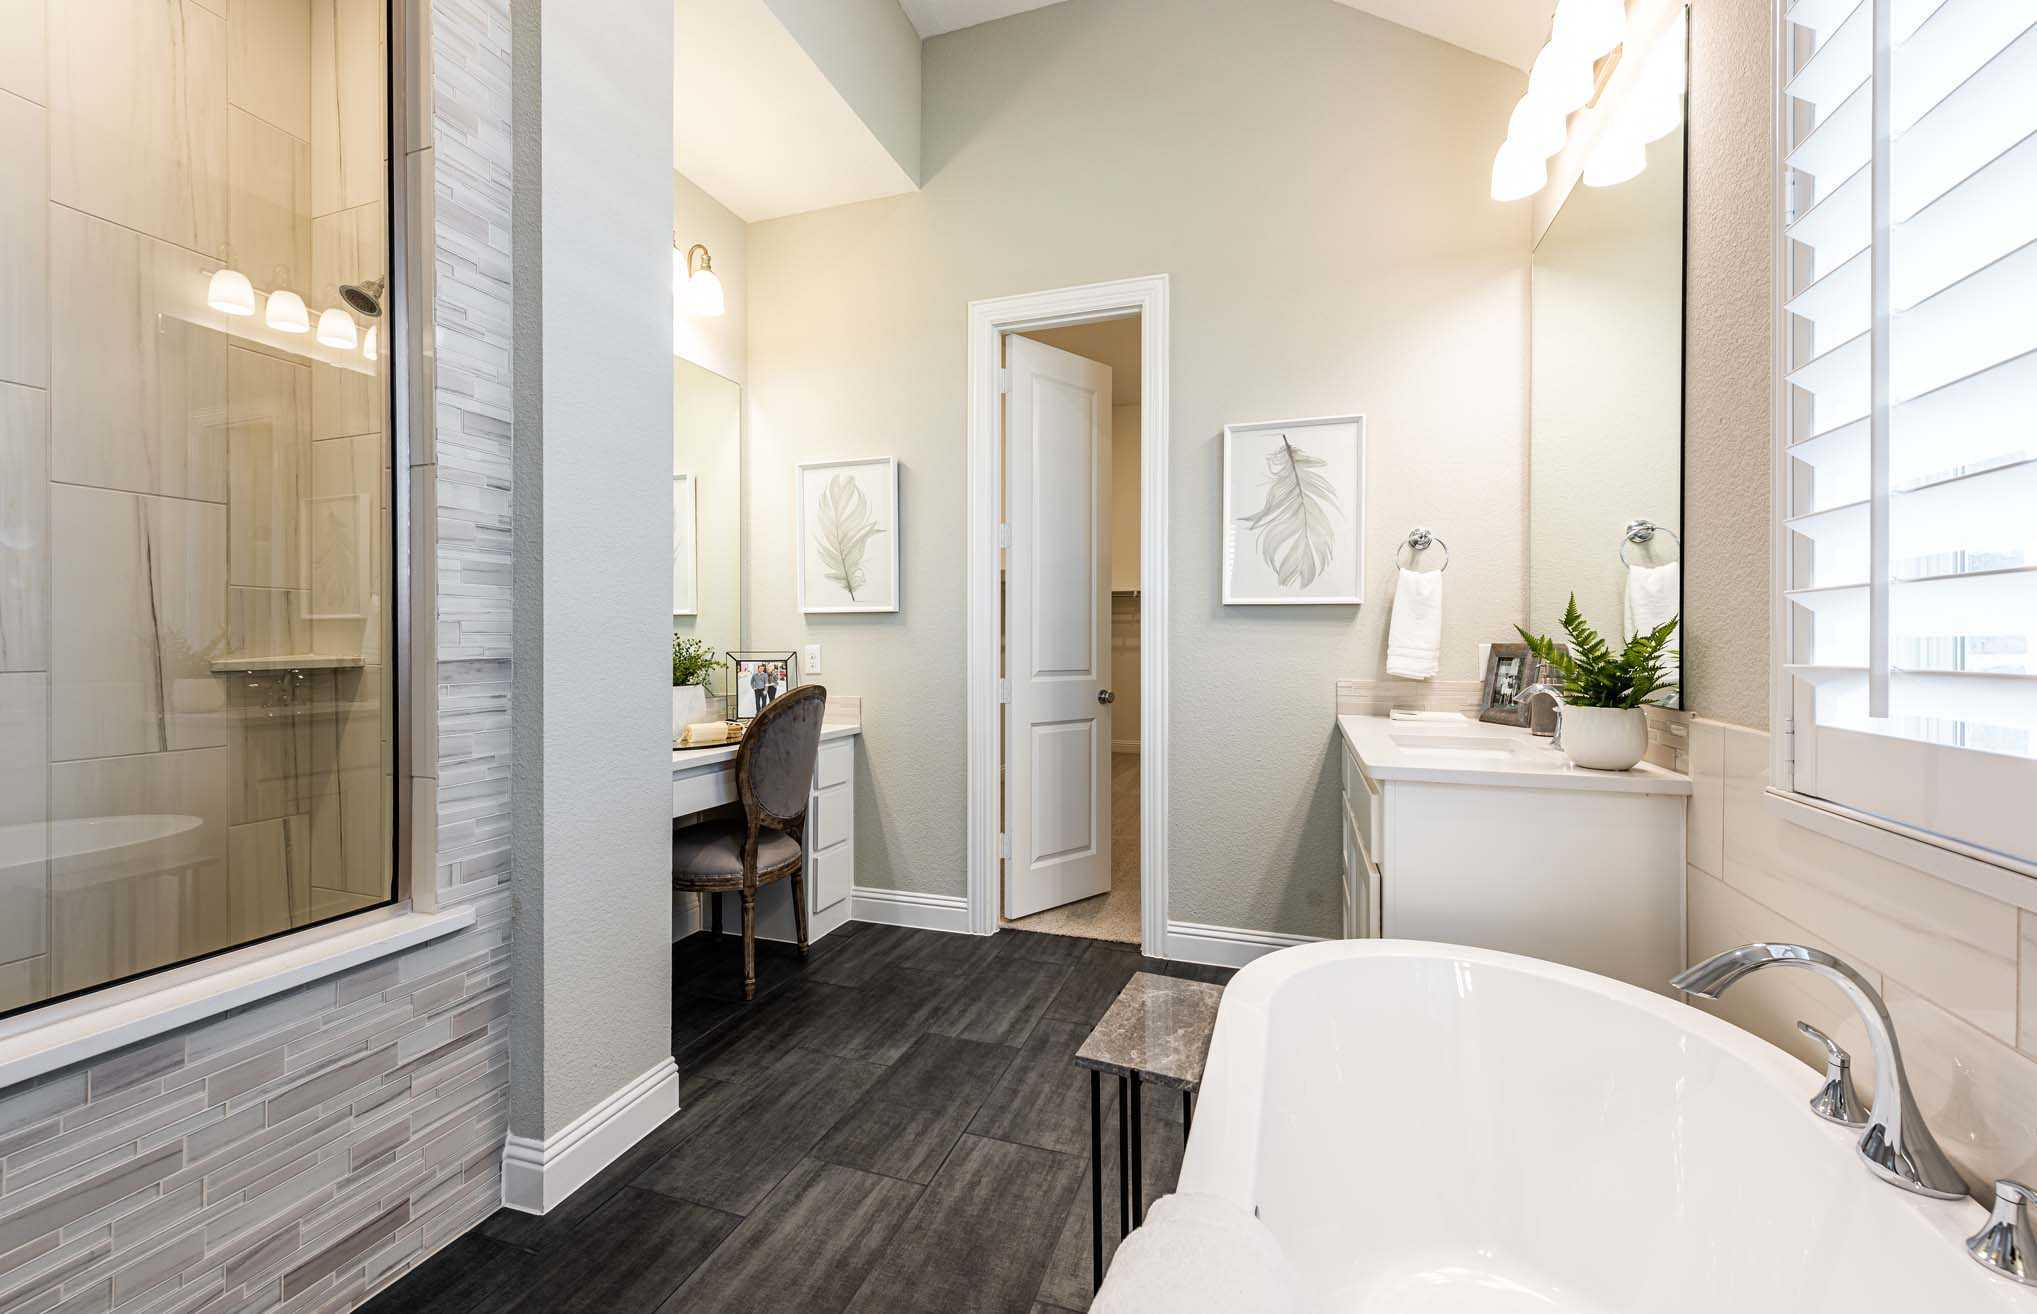 Bathroom featured in the Plan 274 By Highland Homes in San Antonio, TX